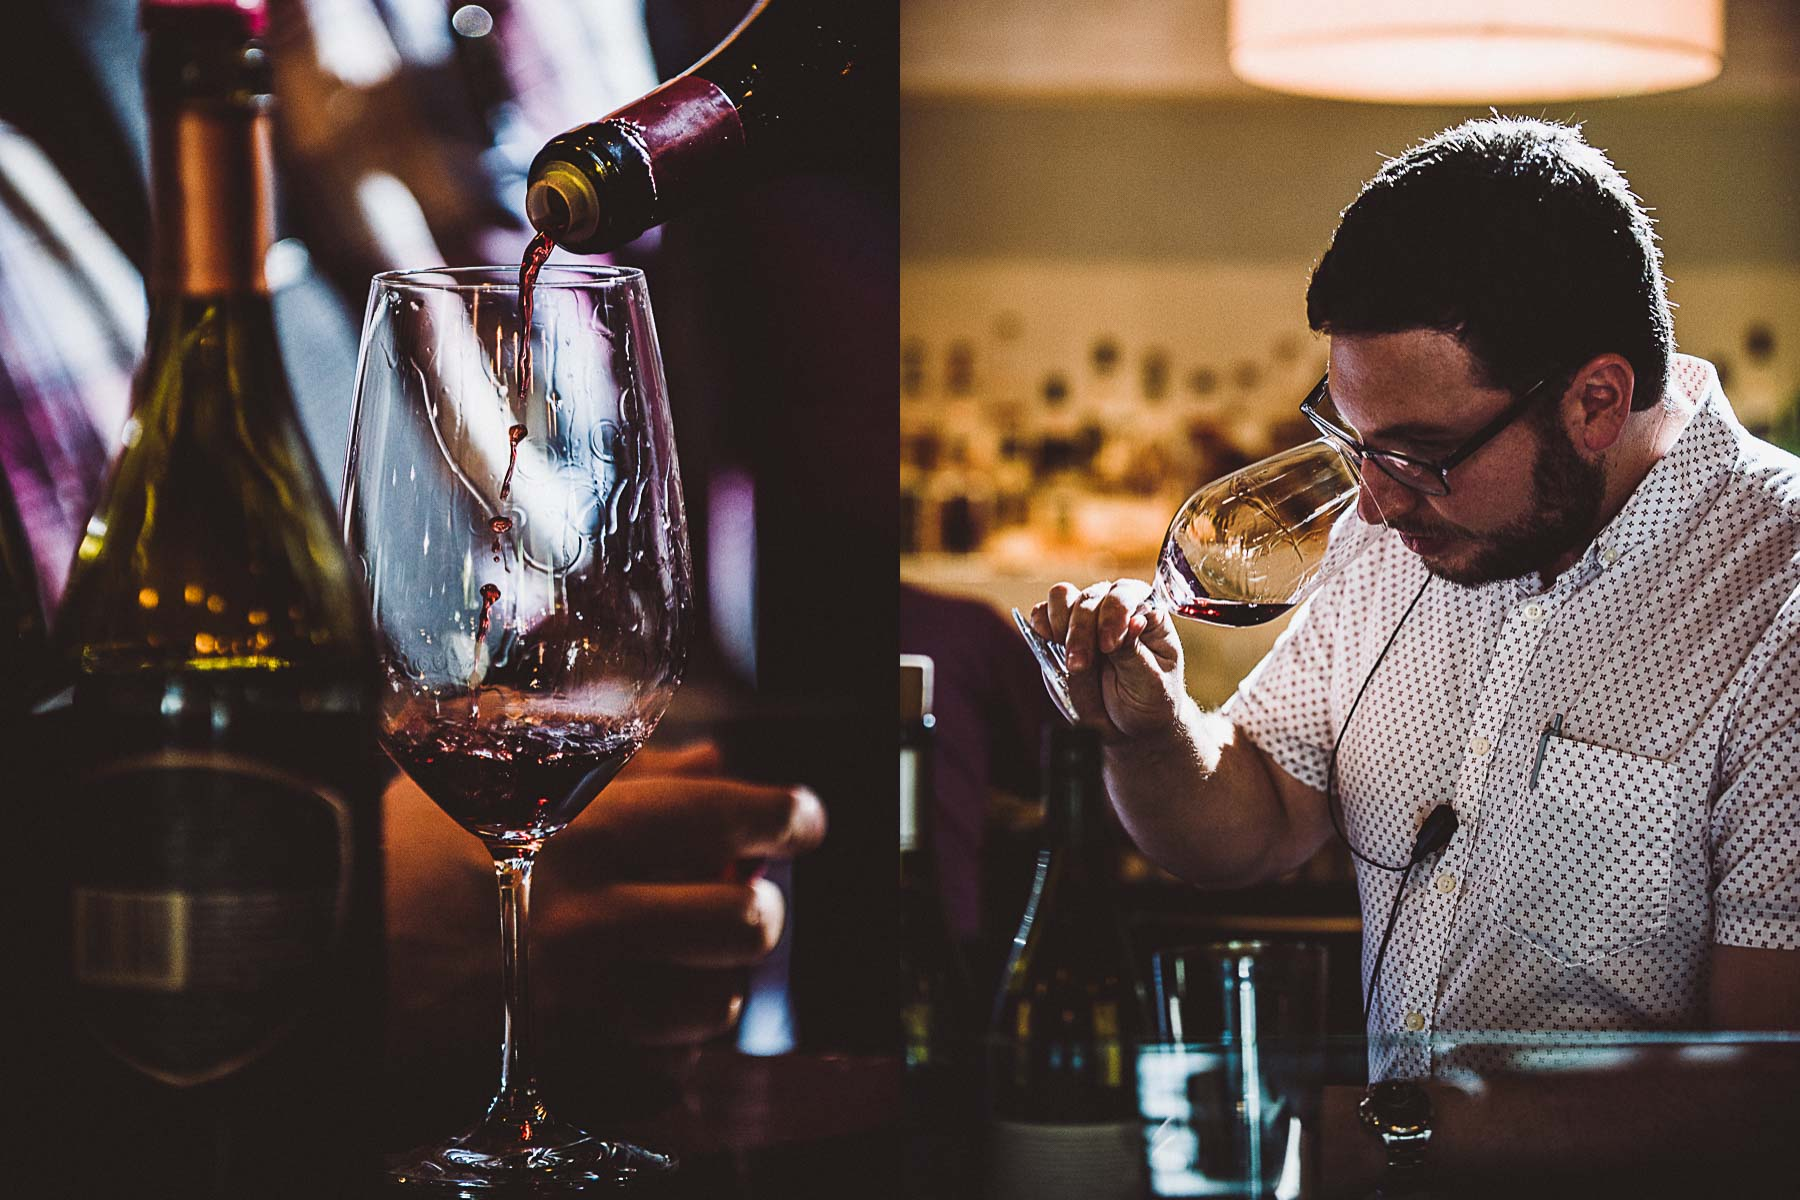 Sommelier meets with a wine industry representative and tastes a wine from their collection.